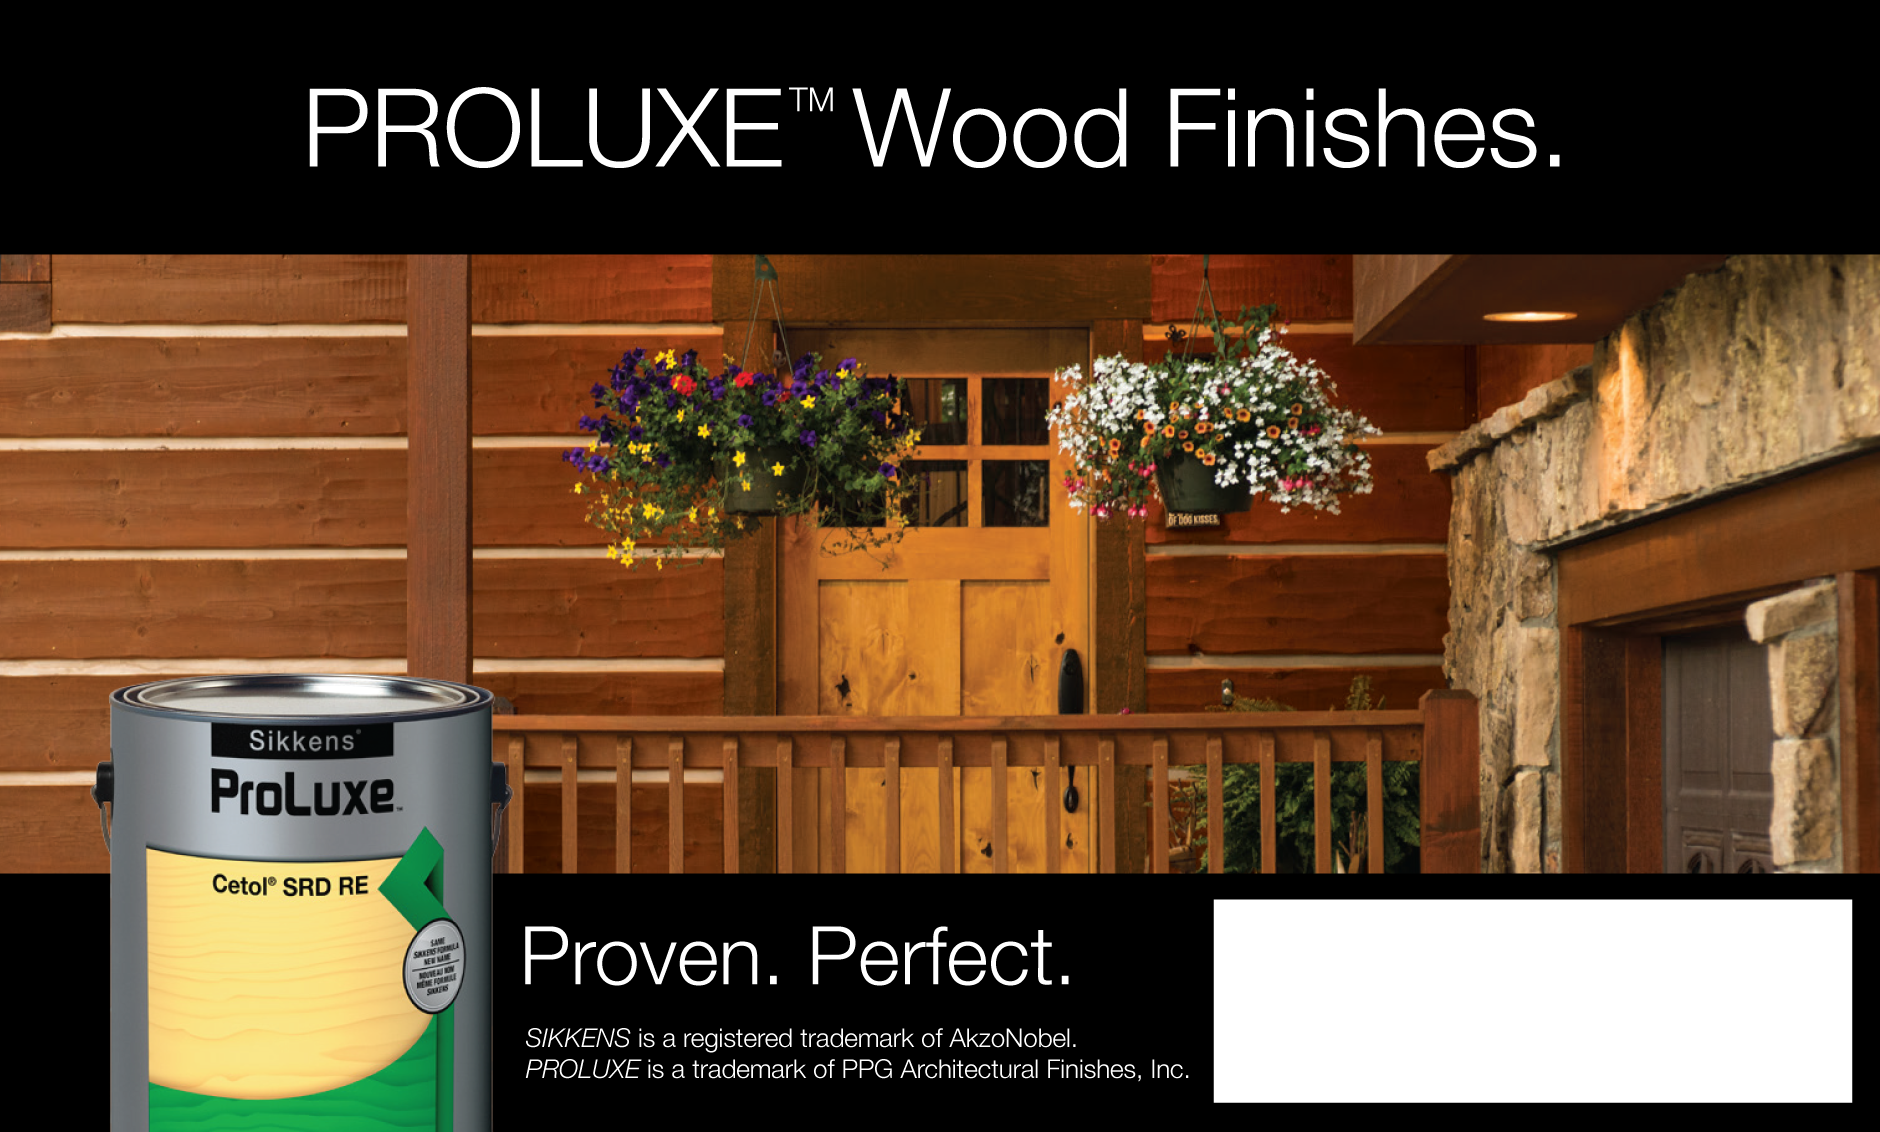 Pro Luxe wood finishes